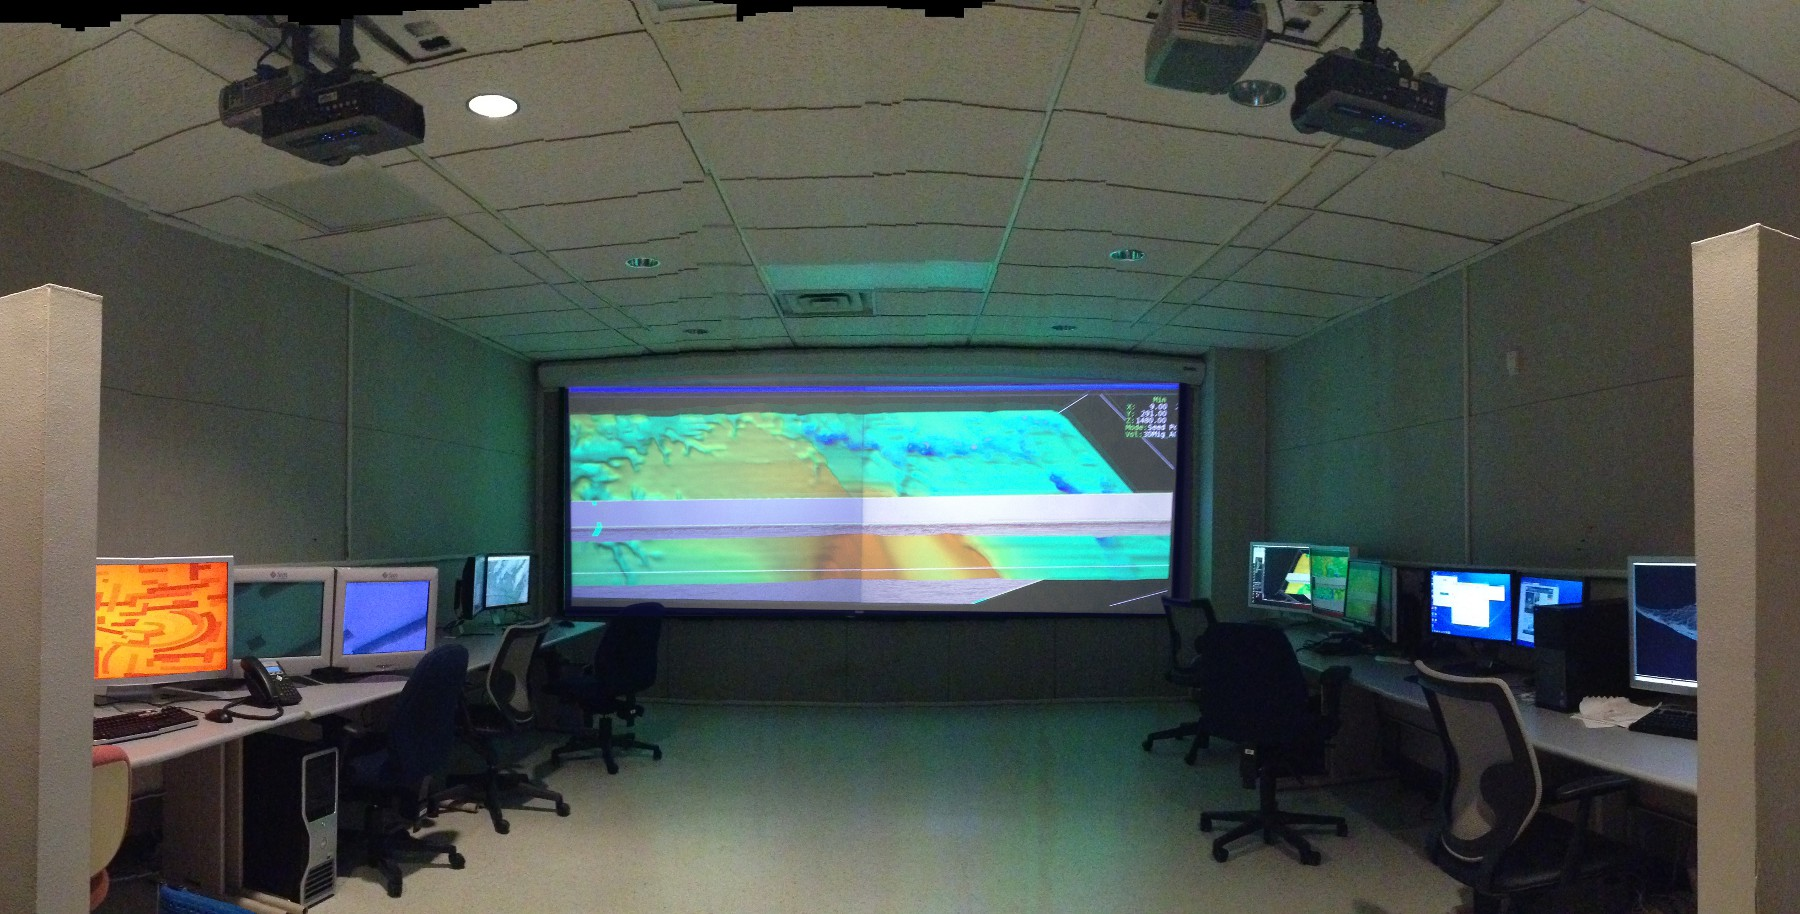 STARR Visualiztion Lab with four projectors on double wide screen and workstations.